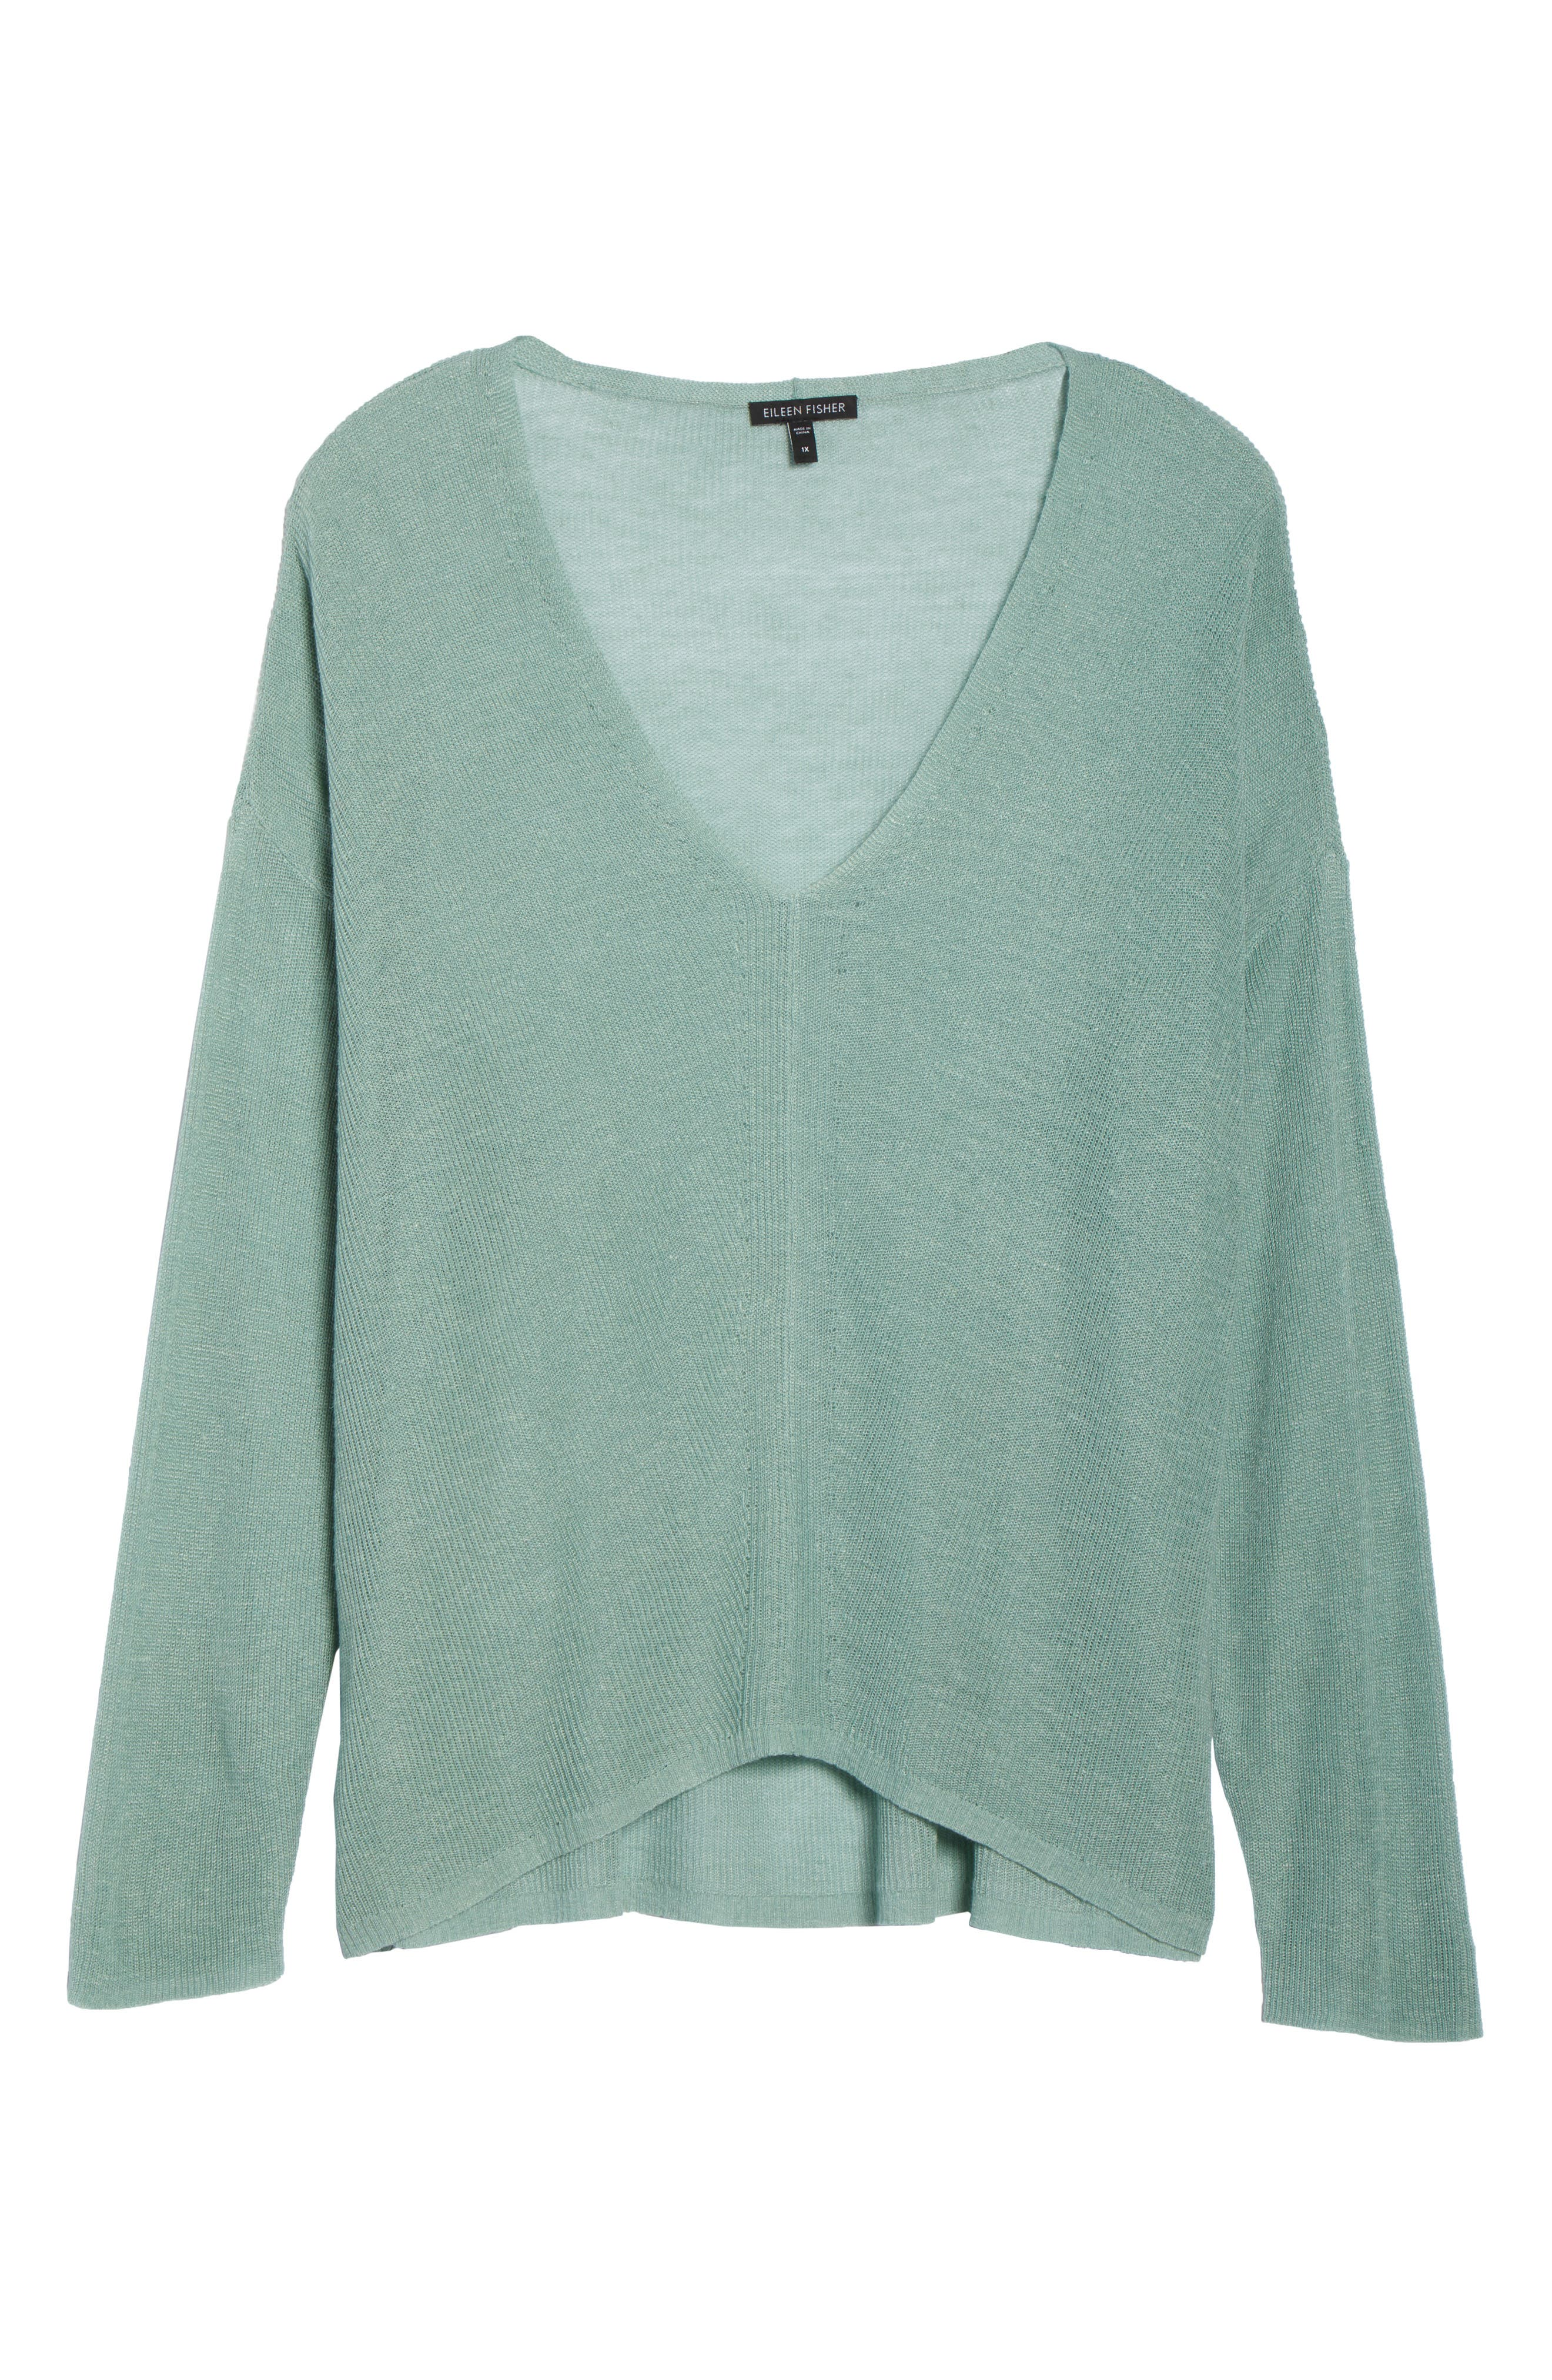 Boxy Organic Linen Blend Sweater,                             Alternate thumbnail 6, color,                             Elm